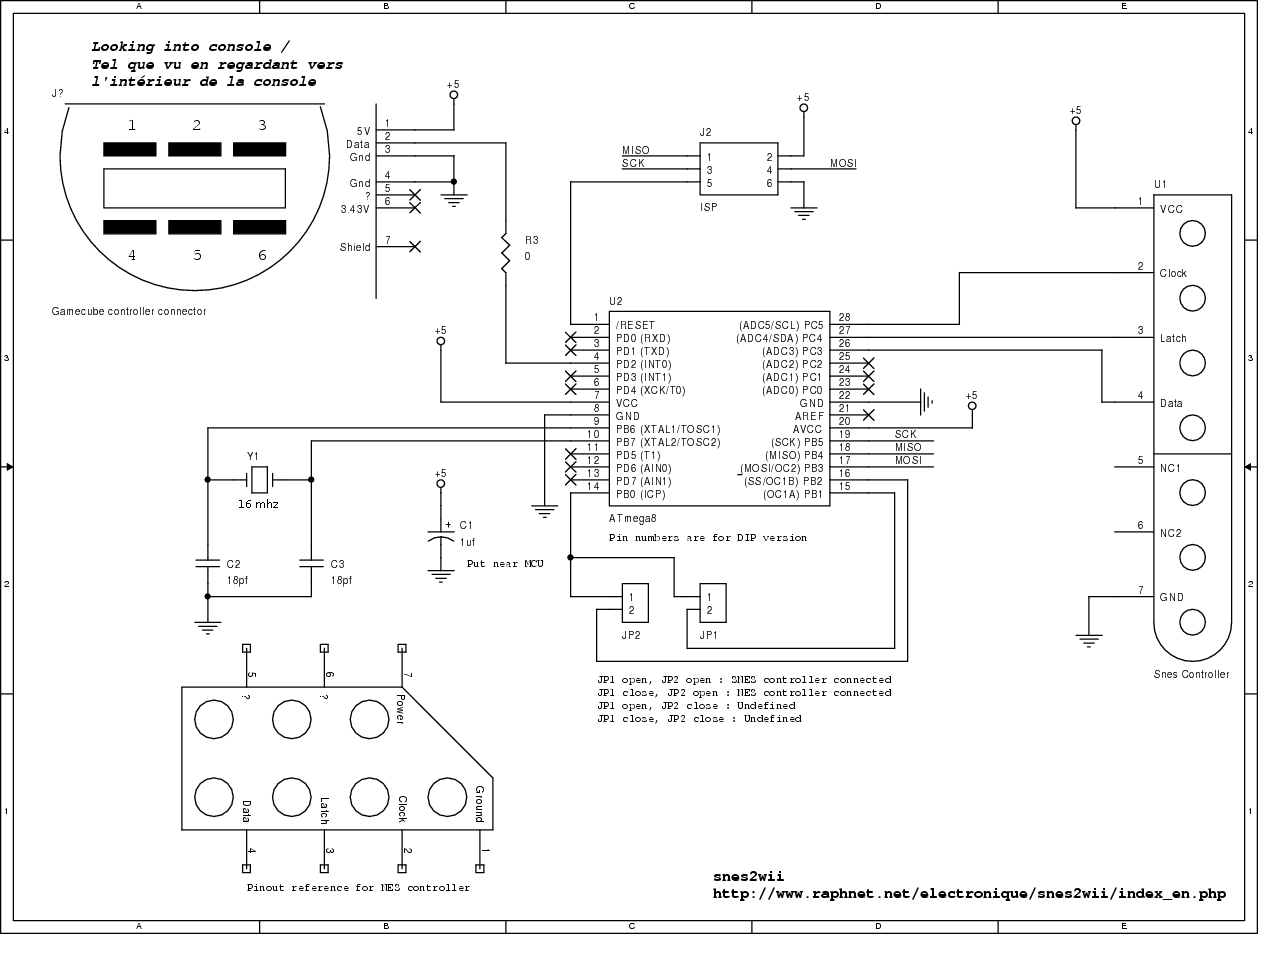 hight resolution of gamecube controller wiring diagram gamecube circuit diagrams gamecube wiring diagram